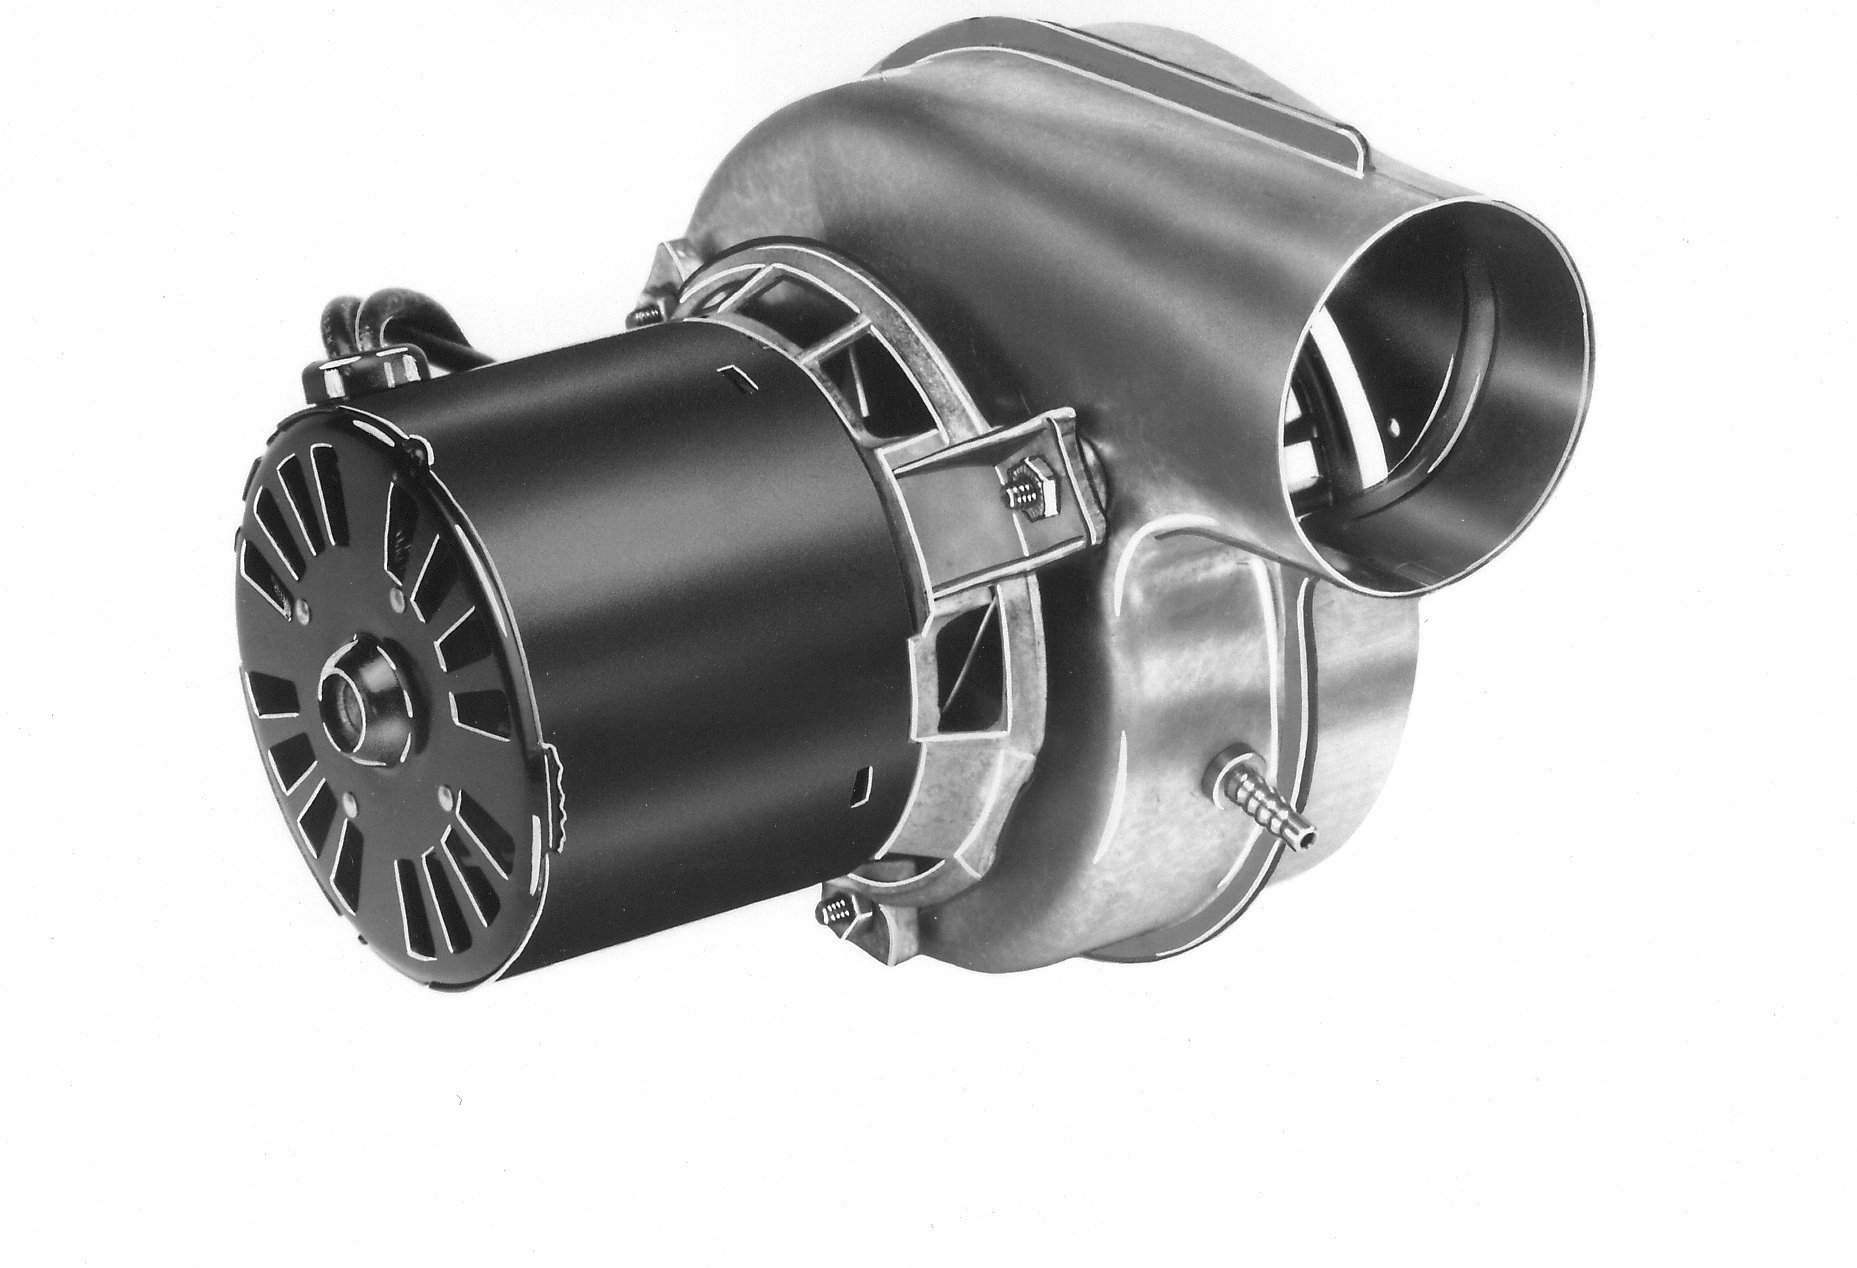 Fasco A138 3.3'' Frame Shaded Pole OEM Replacement Specific Purpose Blower with Sleeve Bearing, 1/70HP, 3,000 rpm, 120V, 60 Hz, 0.7 amps